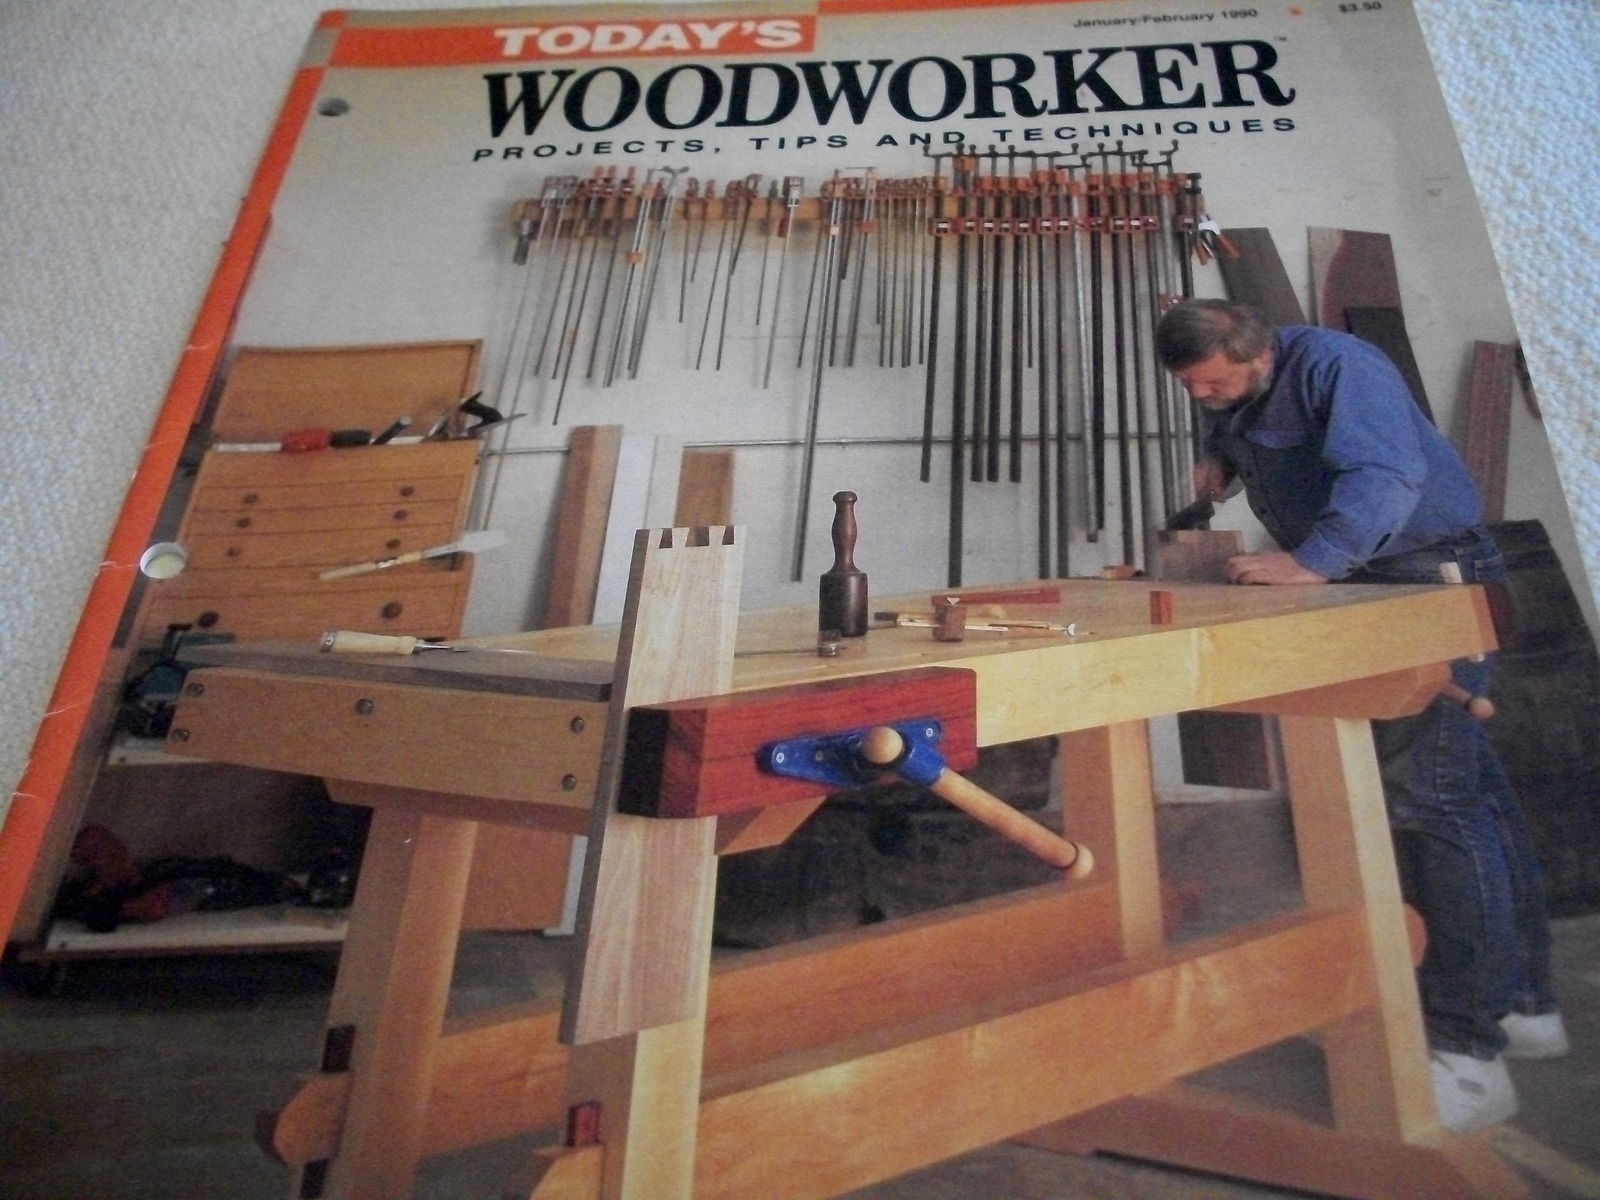 Today's Woodworker Magazine: January/February 1990 - $5.00